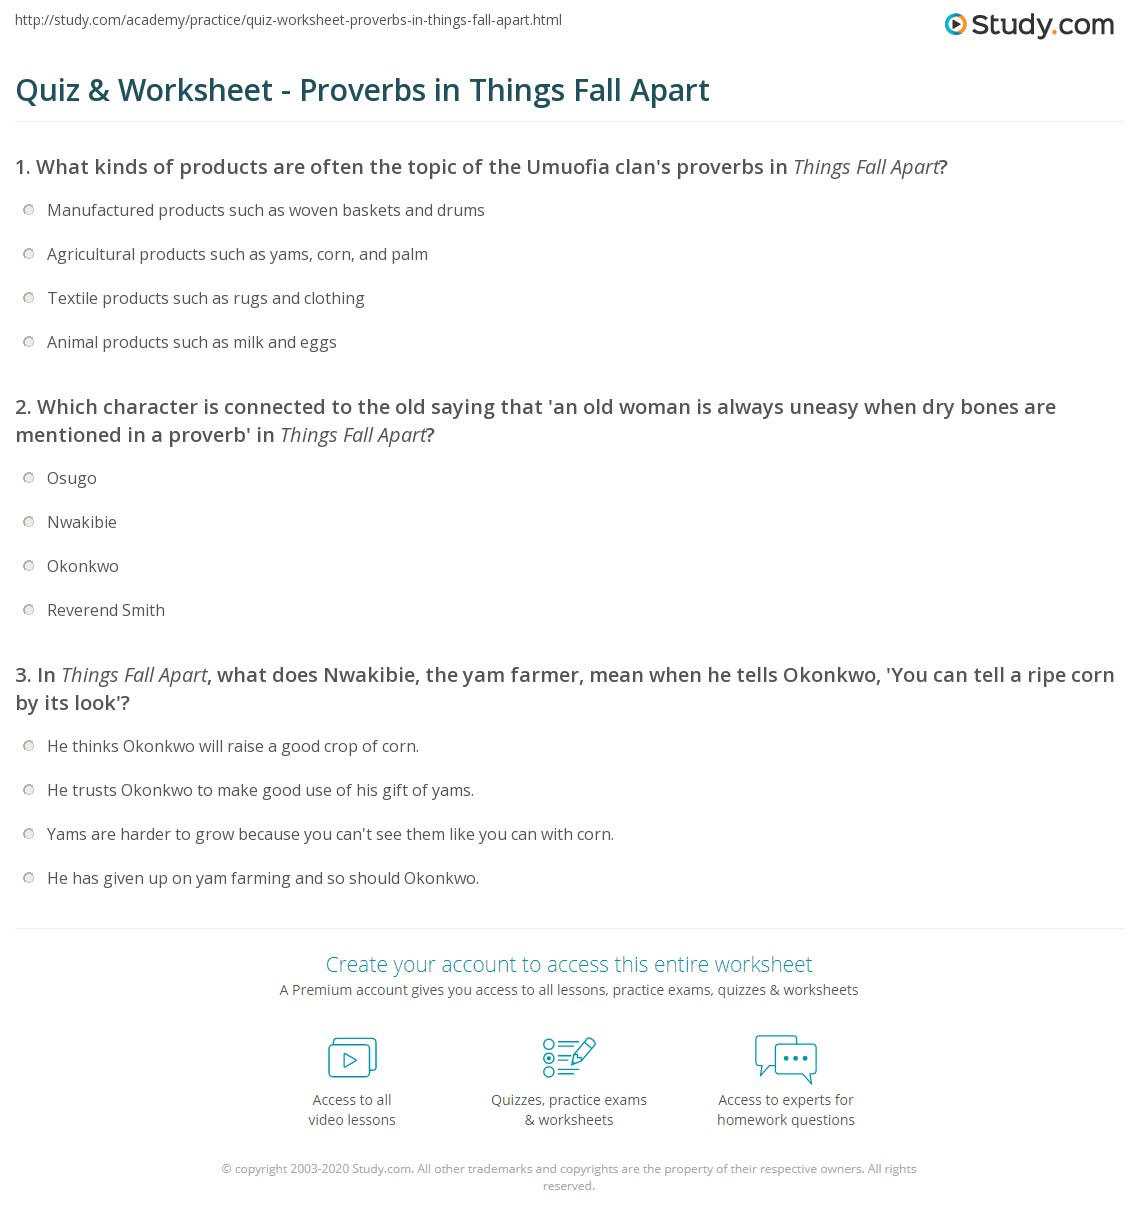 Quiz & Worksheet - Proverbs in Things Fall Apart | Study.com